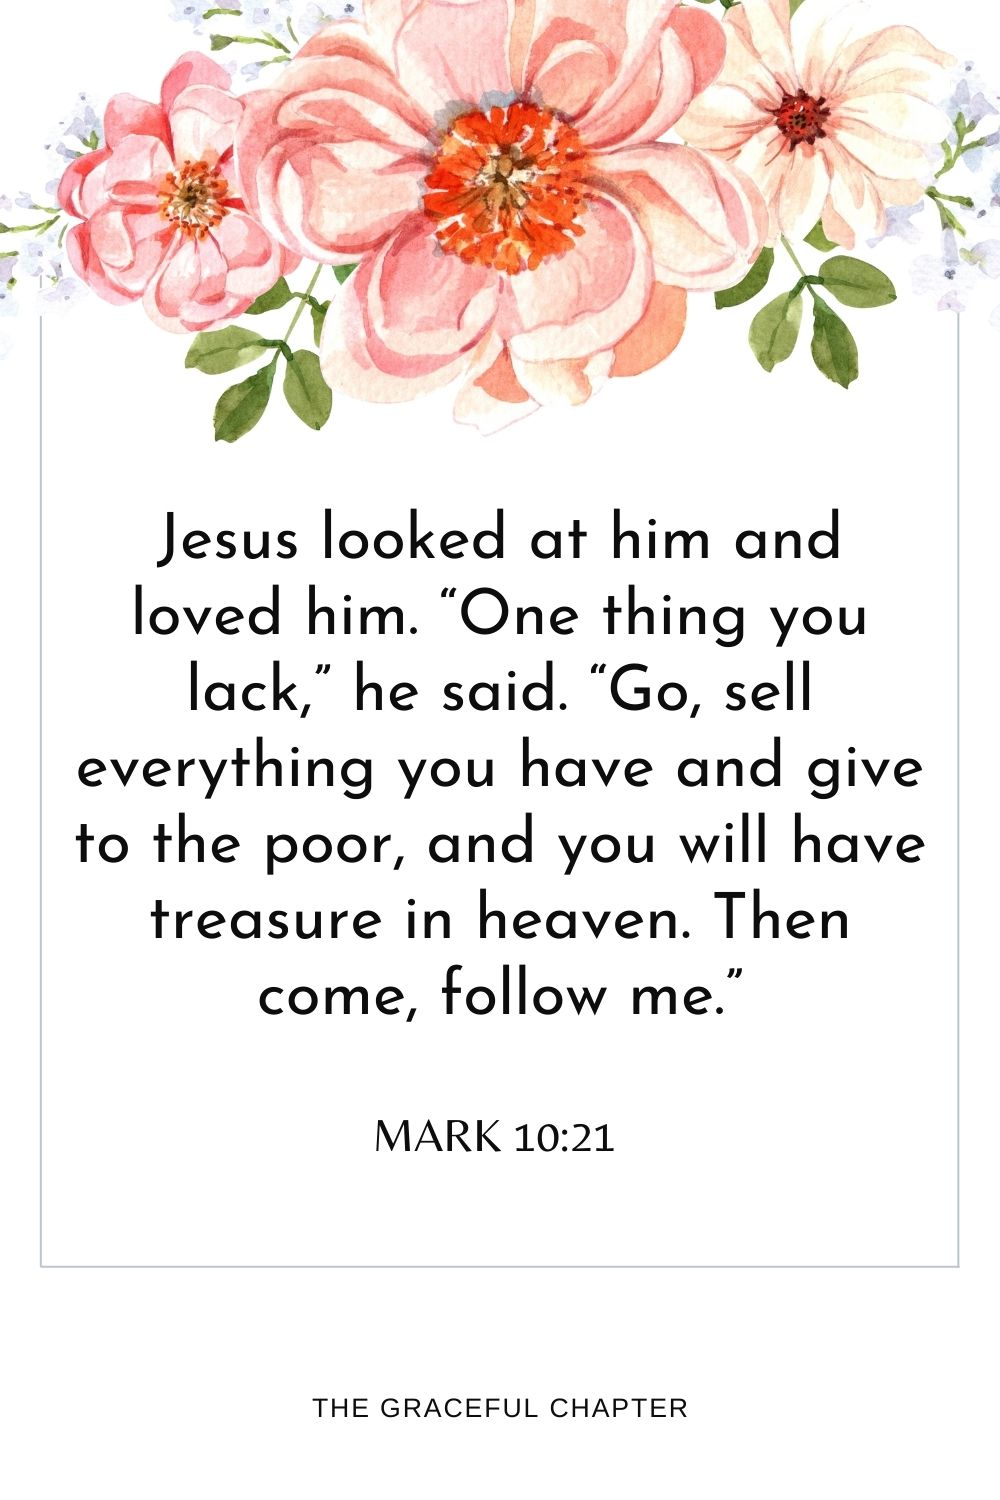 """Jesus looked at him and loved him.""""One thing you lack,""""he said.""""Go, sell everything you have and give to the poor,and you will have treasure in heaven.Then come, follow me."""" Mark 10:21"""